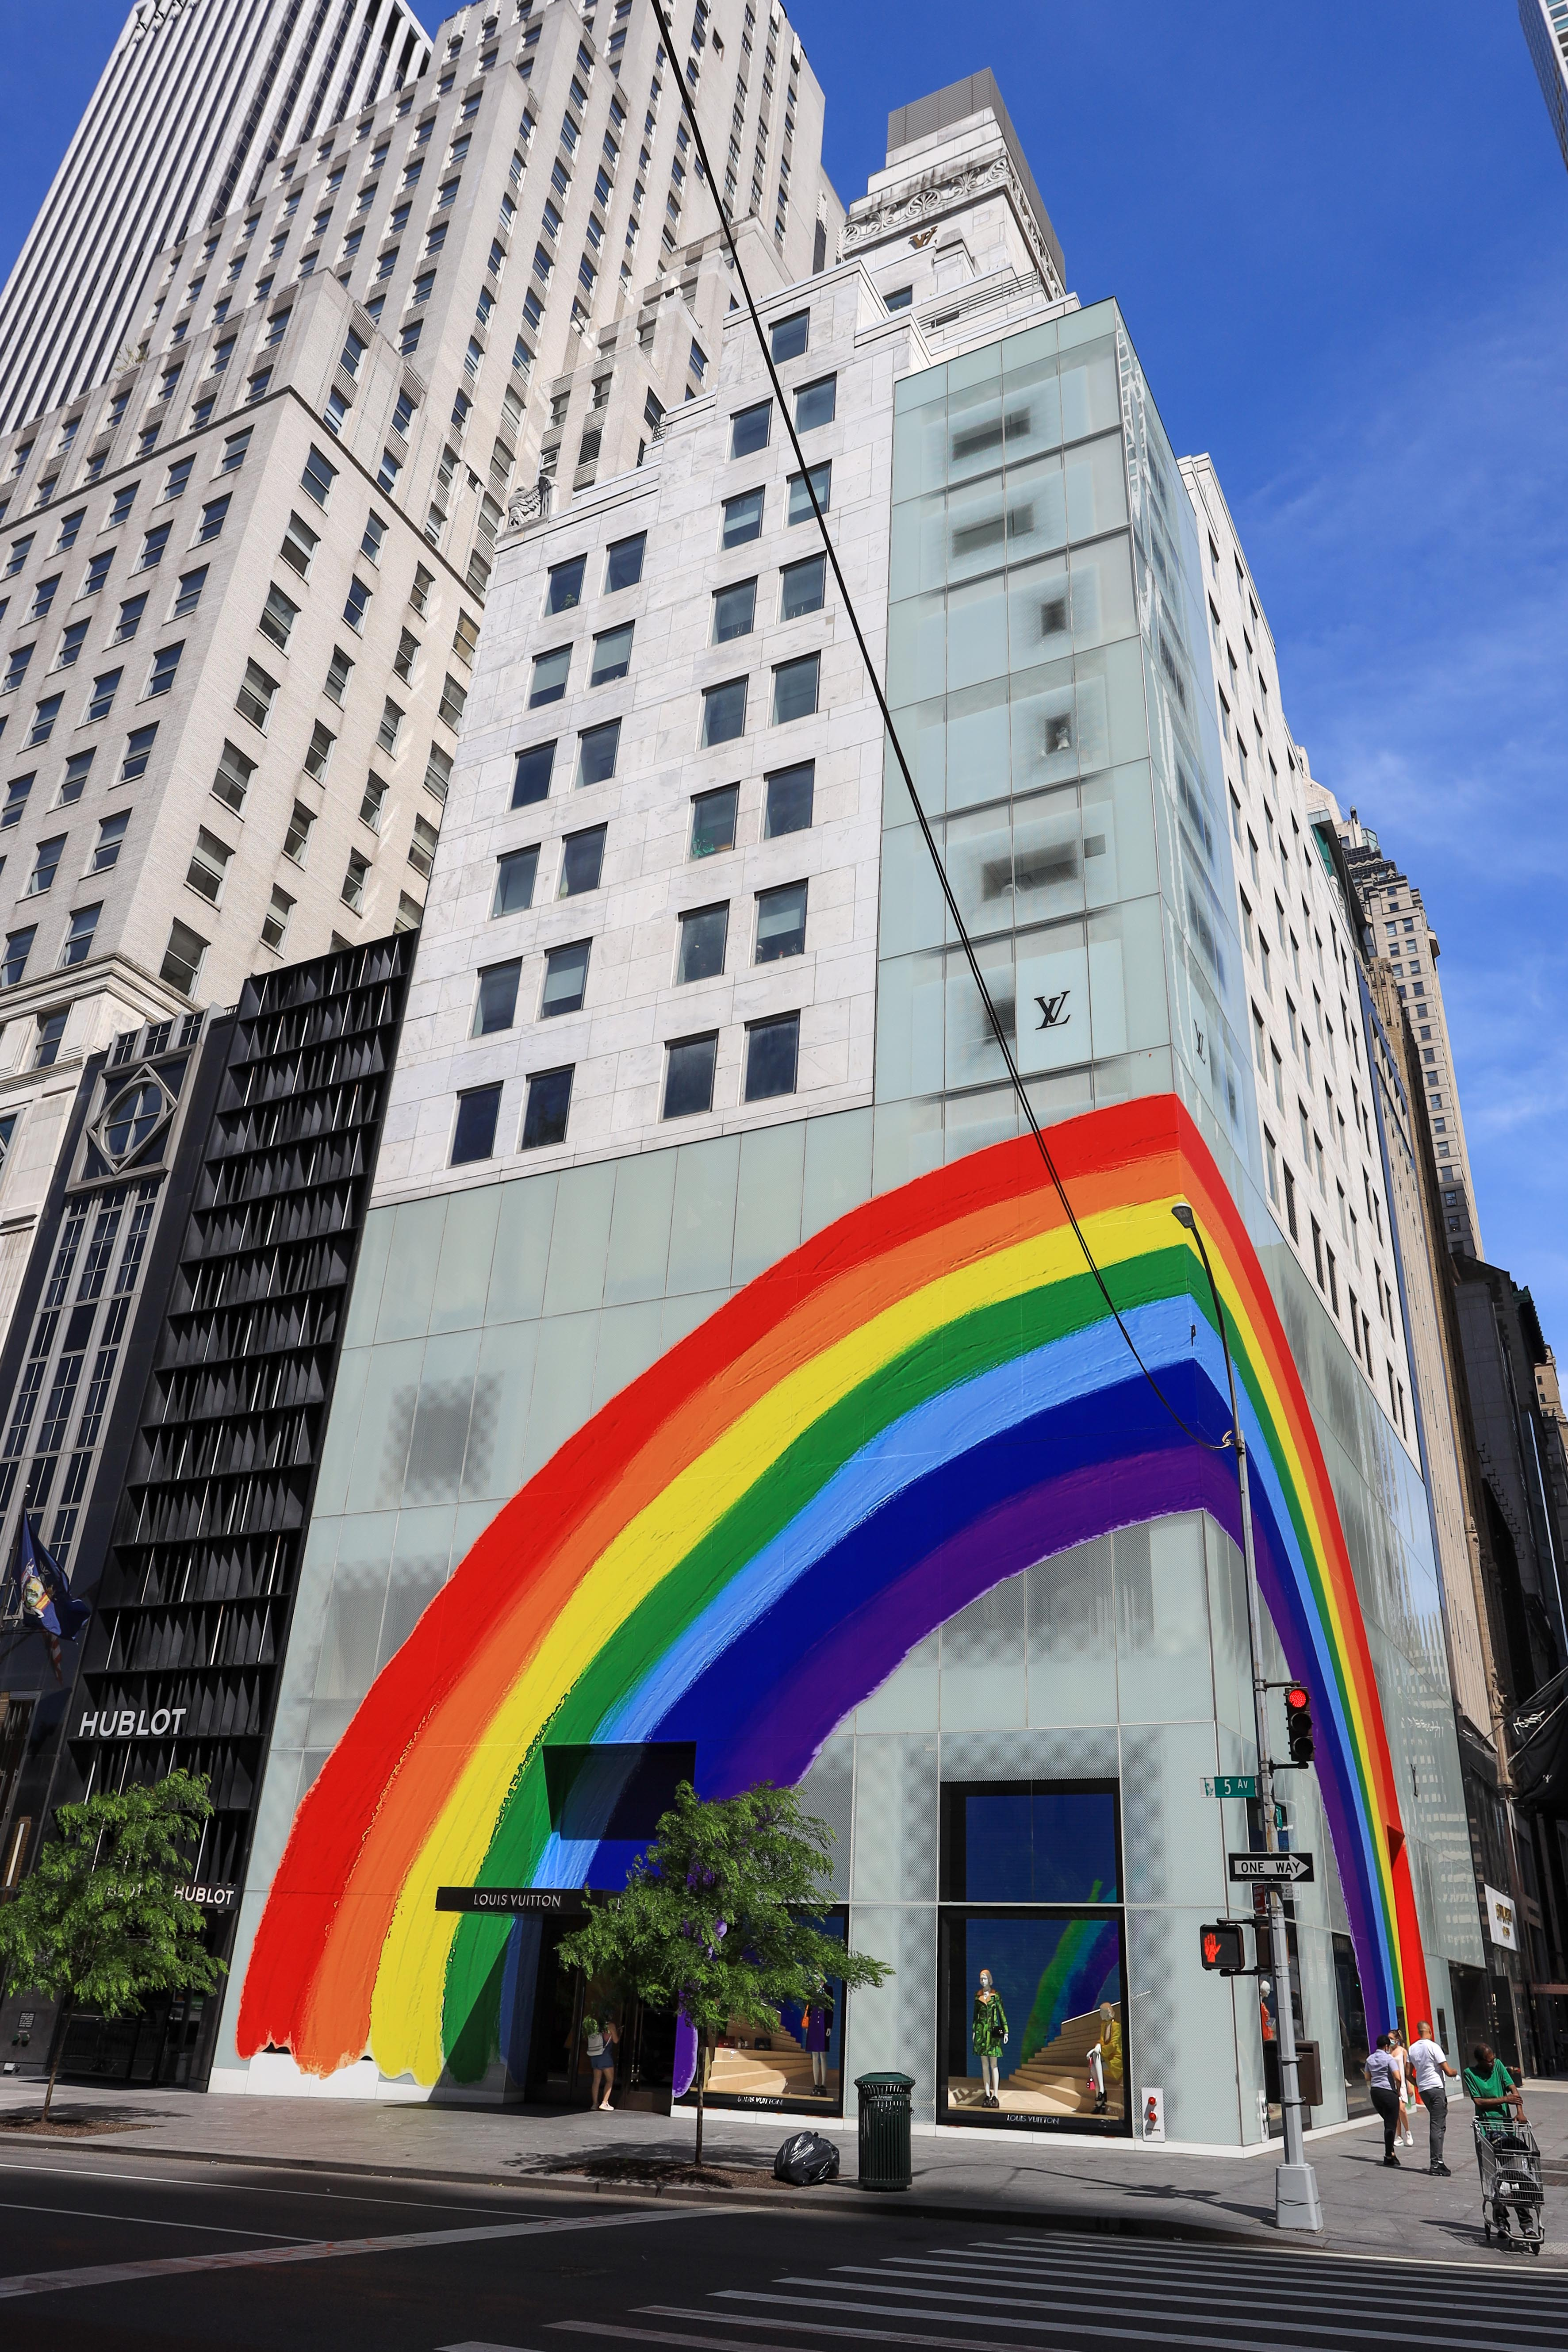 Louis Vuitton store is seen with a rainbow in reference to LGBTQ + pride month on Fifth AvenueLouis Vuitton store LGBTQ Pride mural, New York, USA - 16 Jun 2020